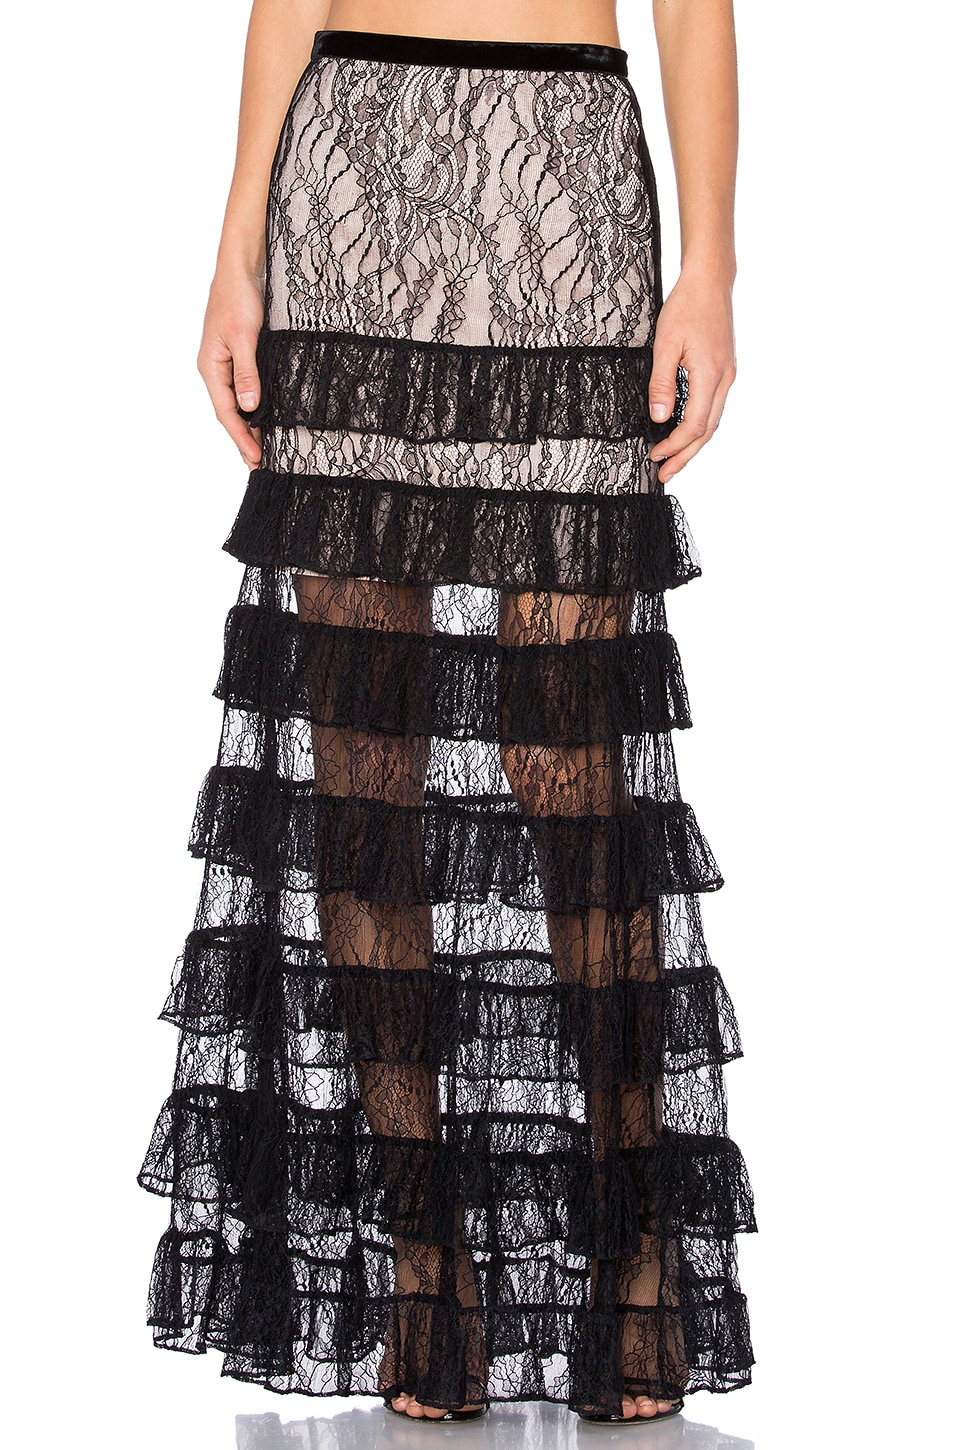 Alexis Vicky Skirt in Black Lace